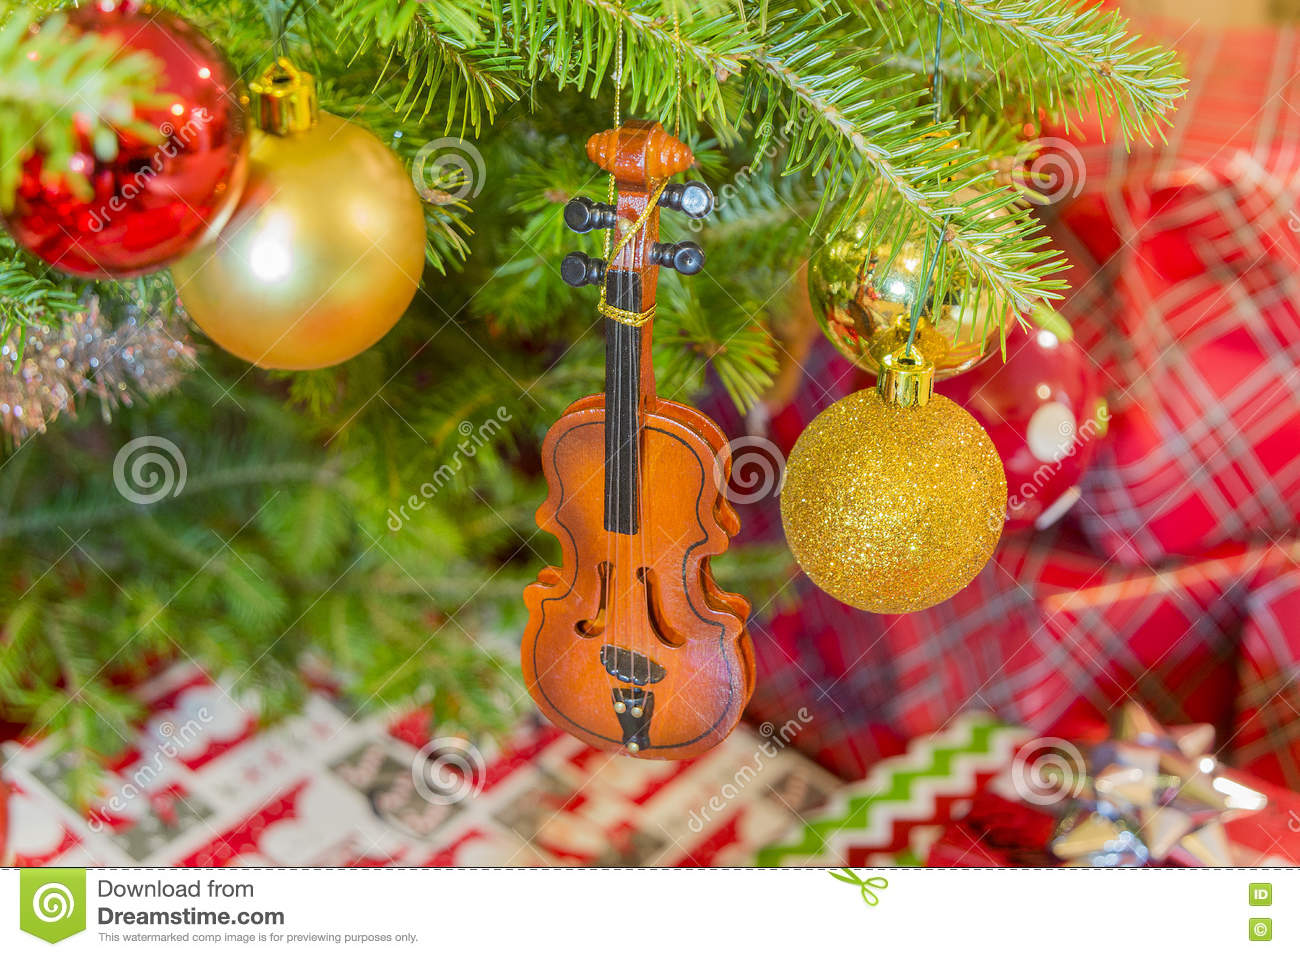 Violin christmas ornaments - Violin Cello Wooden Christmas Ornament Hanging From Tree With Gi